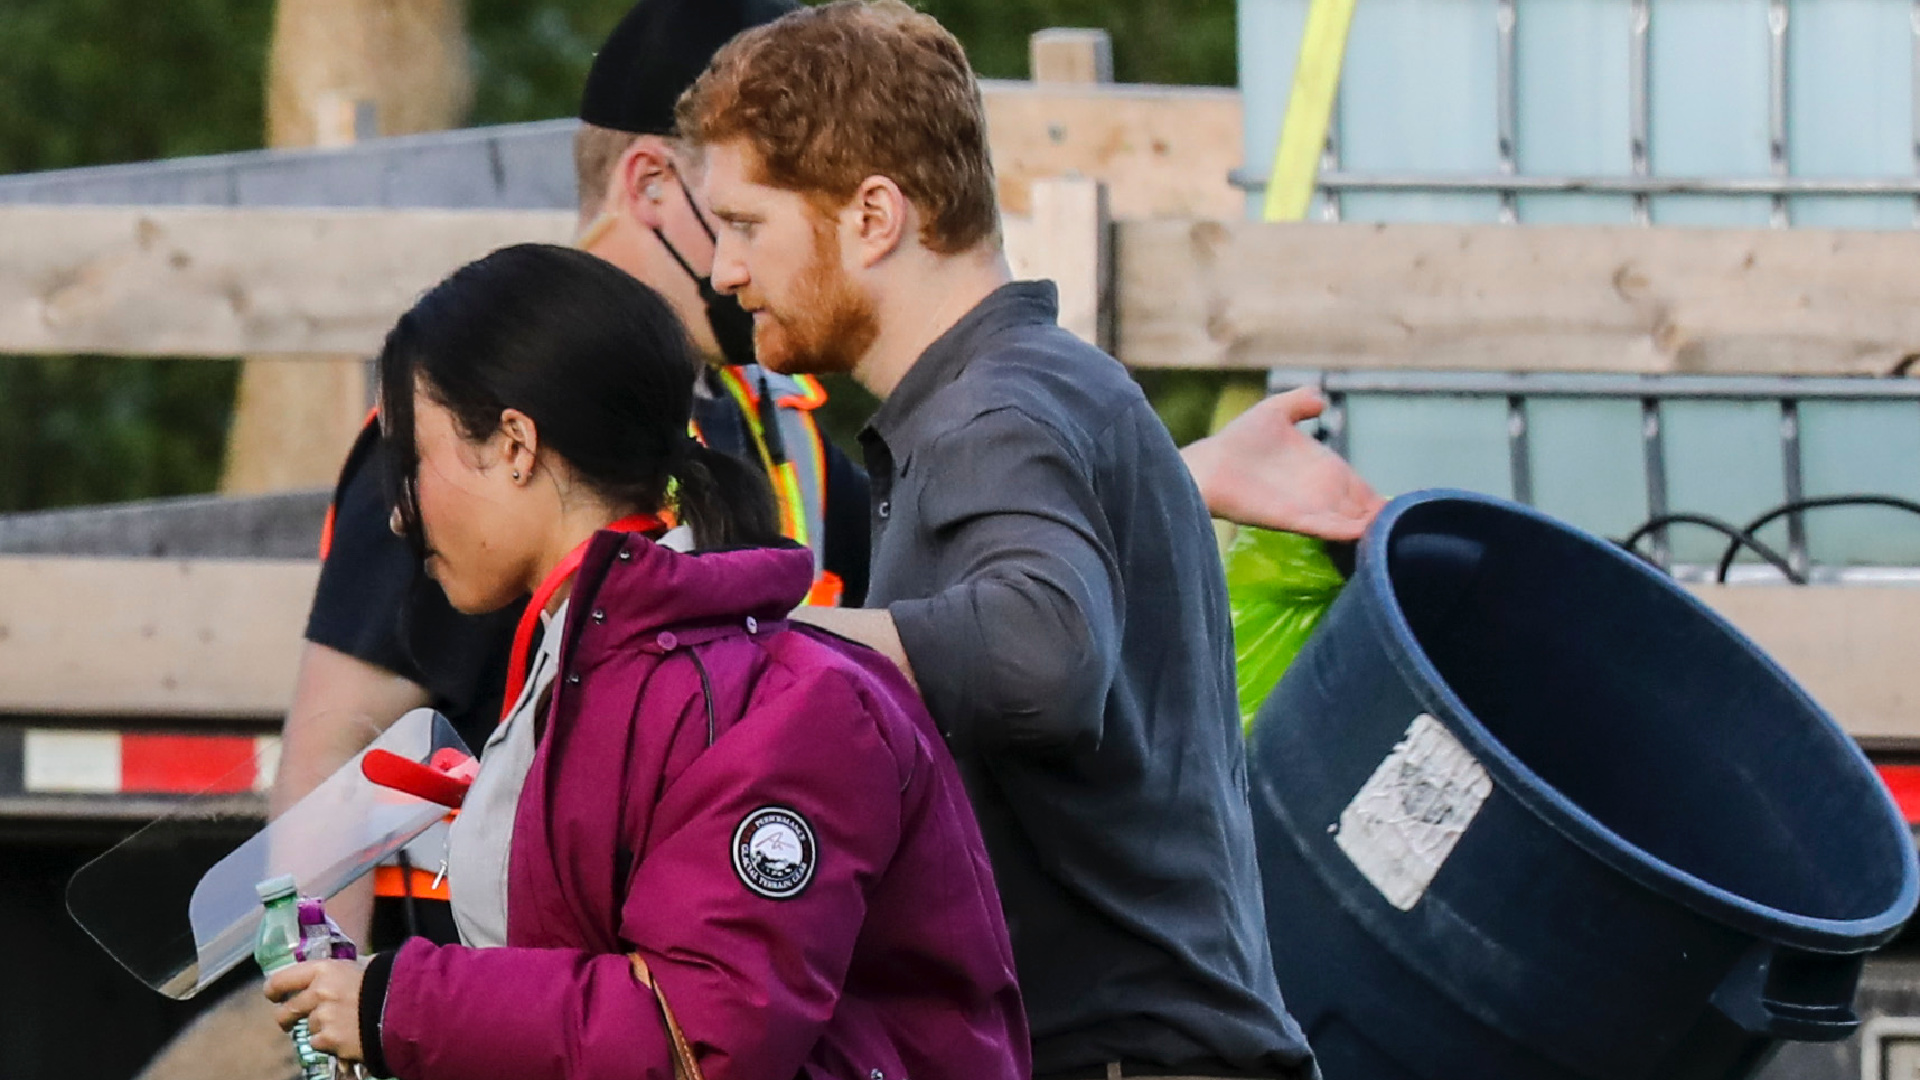 The new film about Harry and Meghan: cast, first images, and controversy